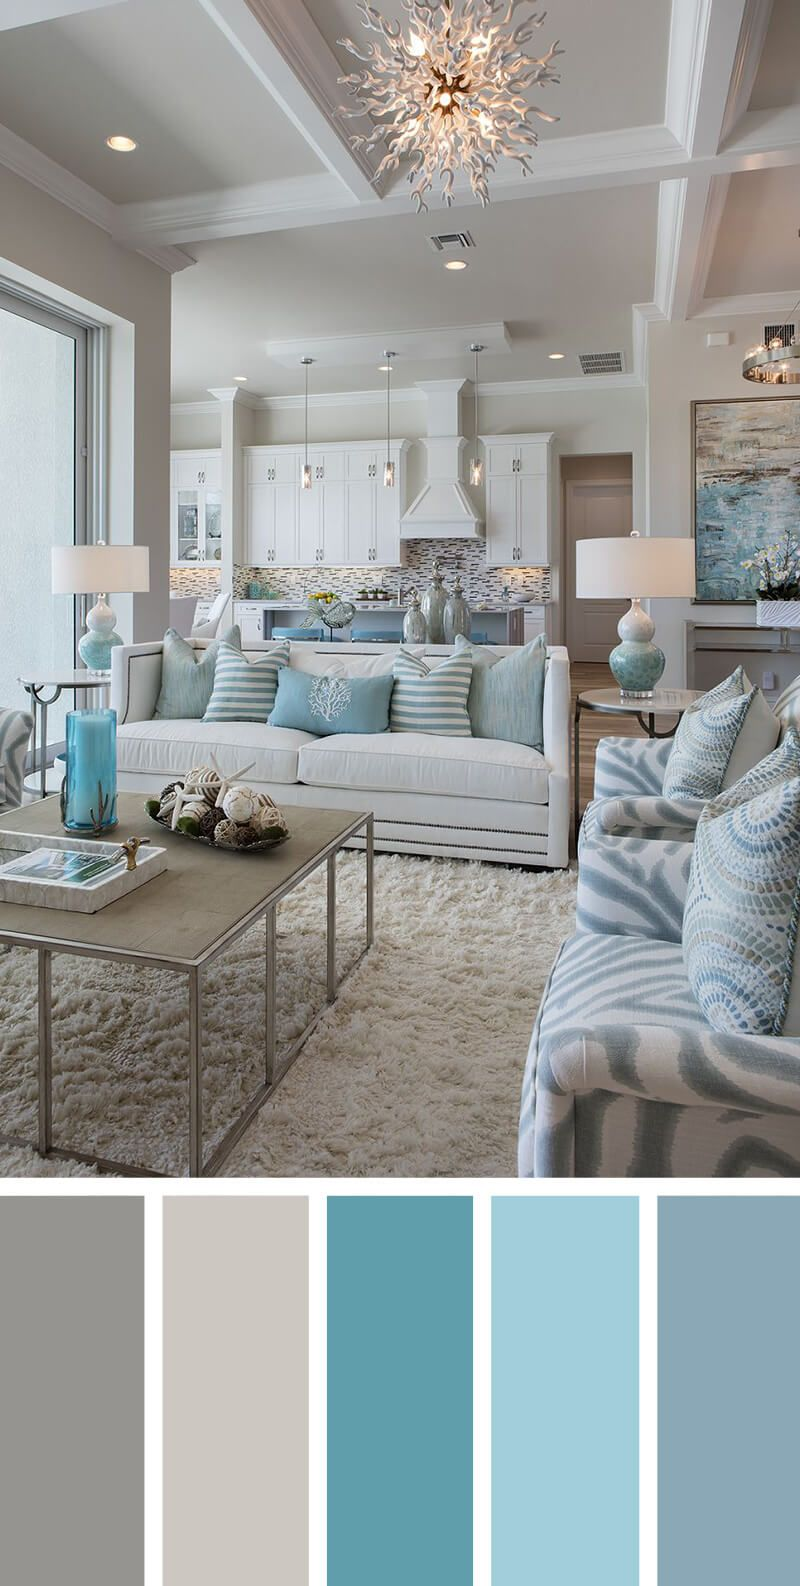 7 Living Room Color Schemes That Will Make Your Space Look Professionally Designed Pinterest